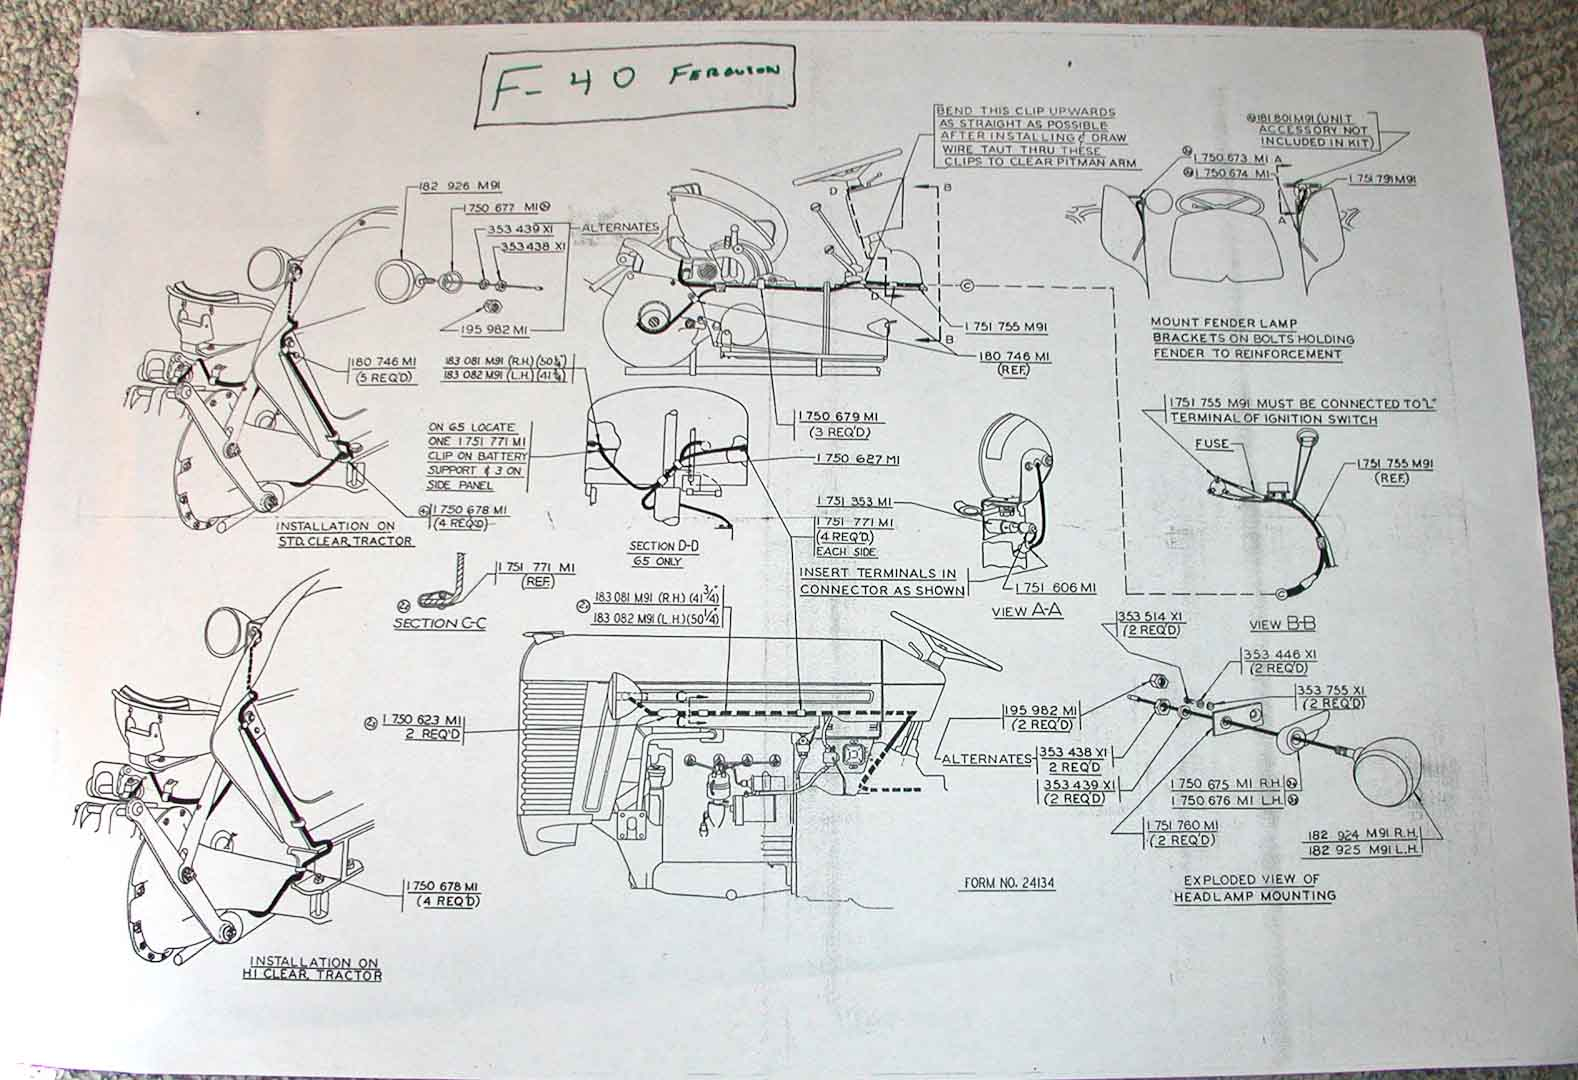 Massey Ferguson 40 Wiring Diagram Start Building A Mf 240 Harness Electrical And Lighting Diagrams Enthusiasts Of North America Rh Fergusontractors Org Gauge